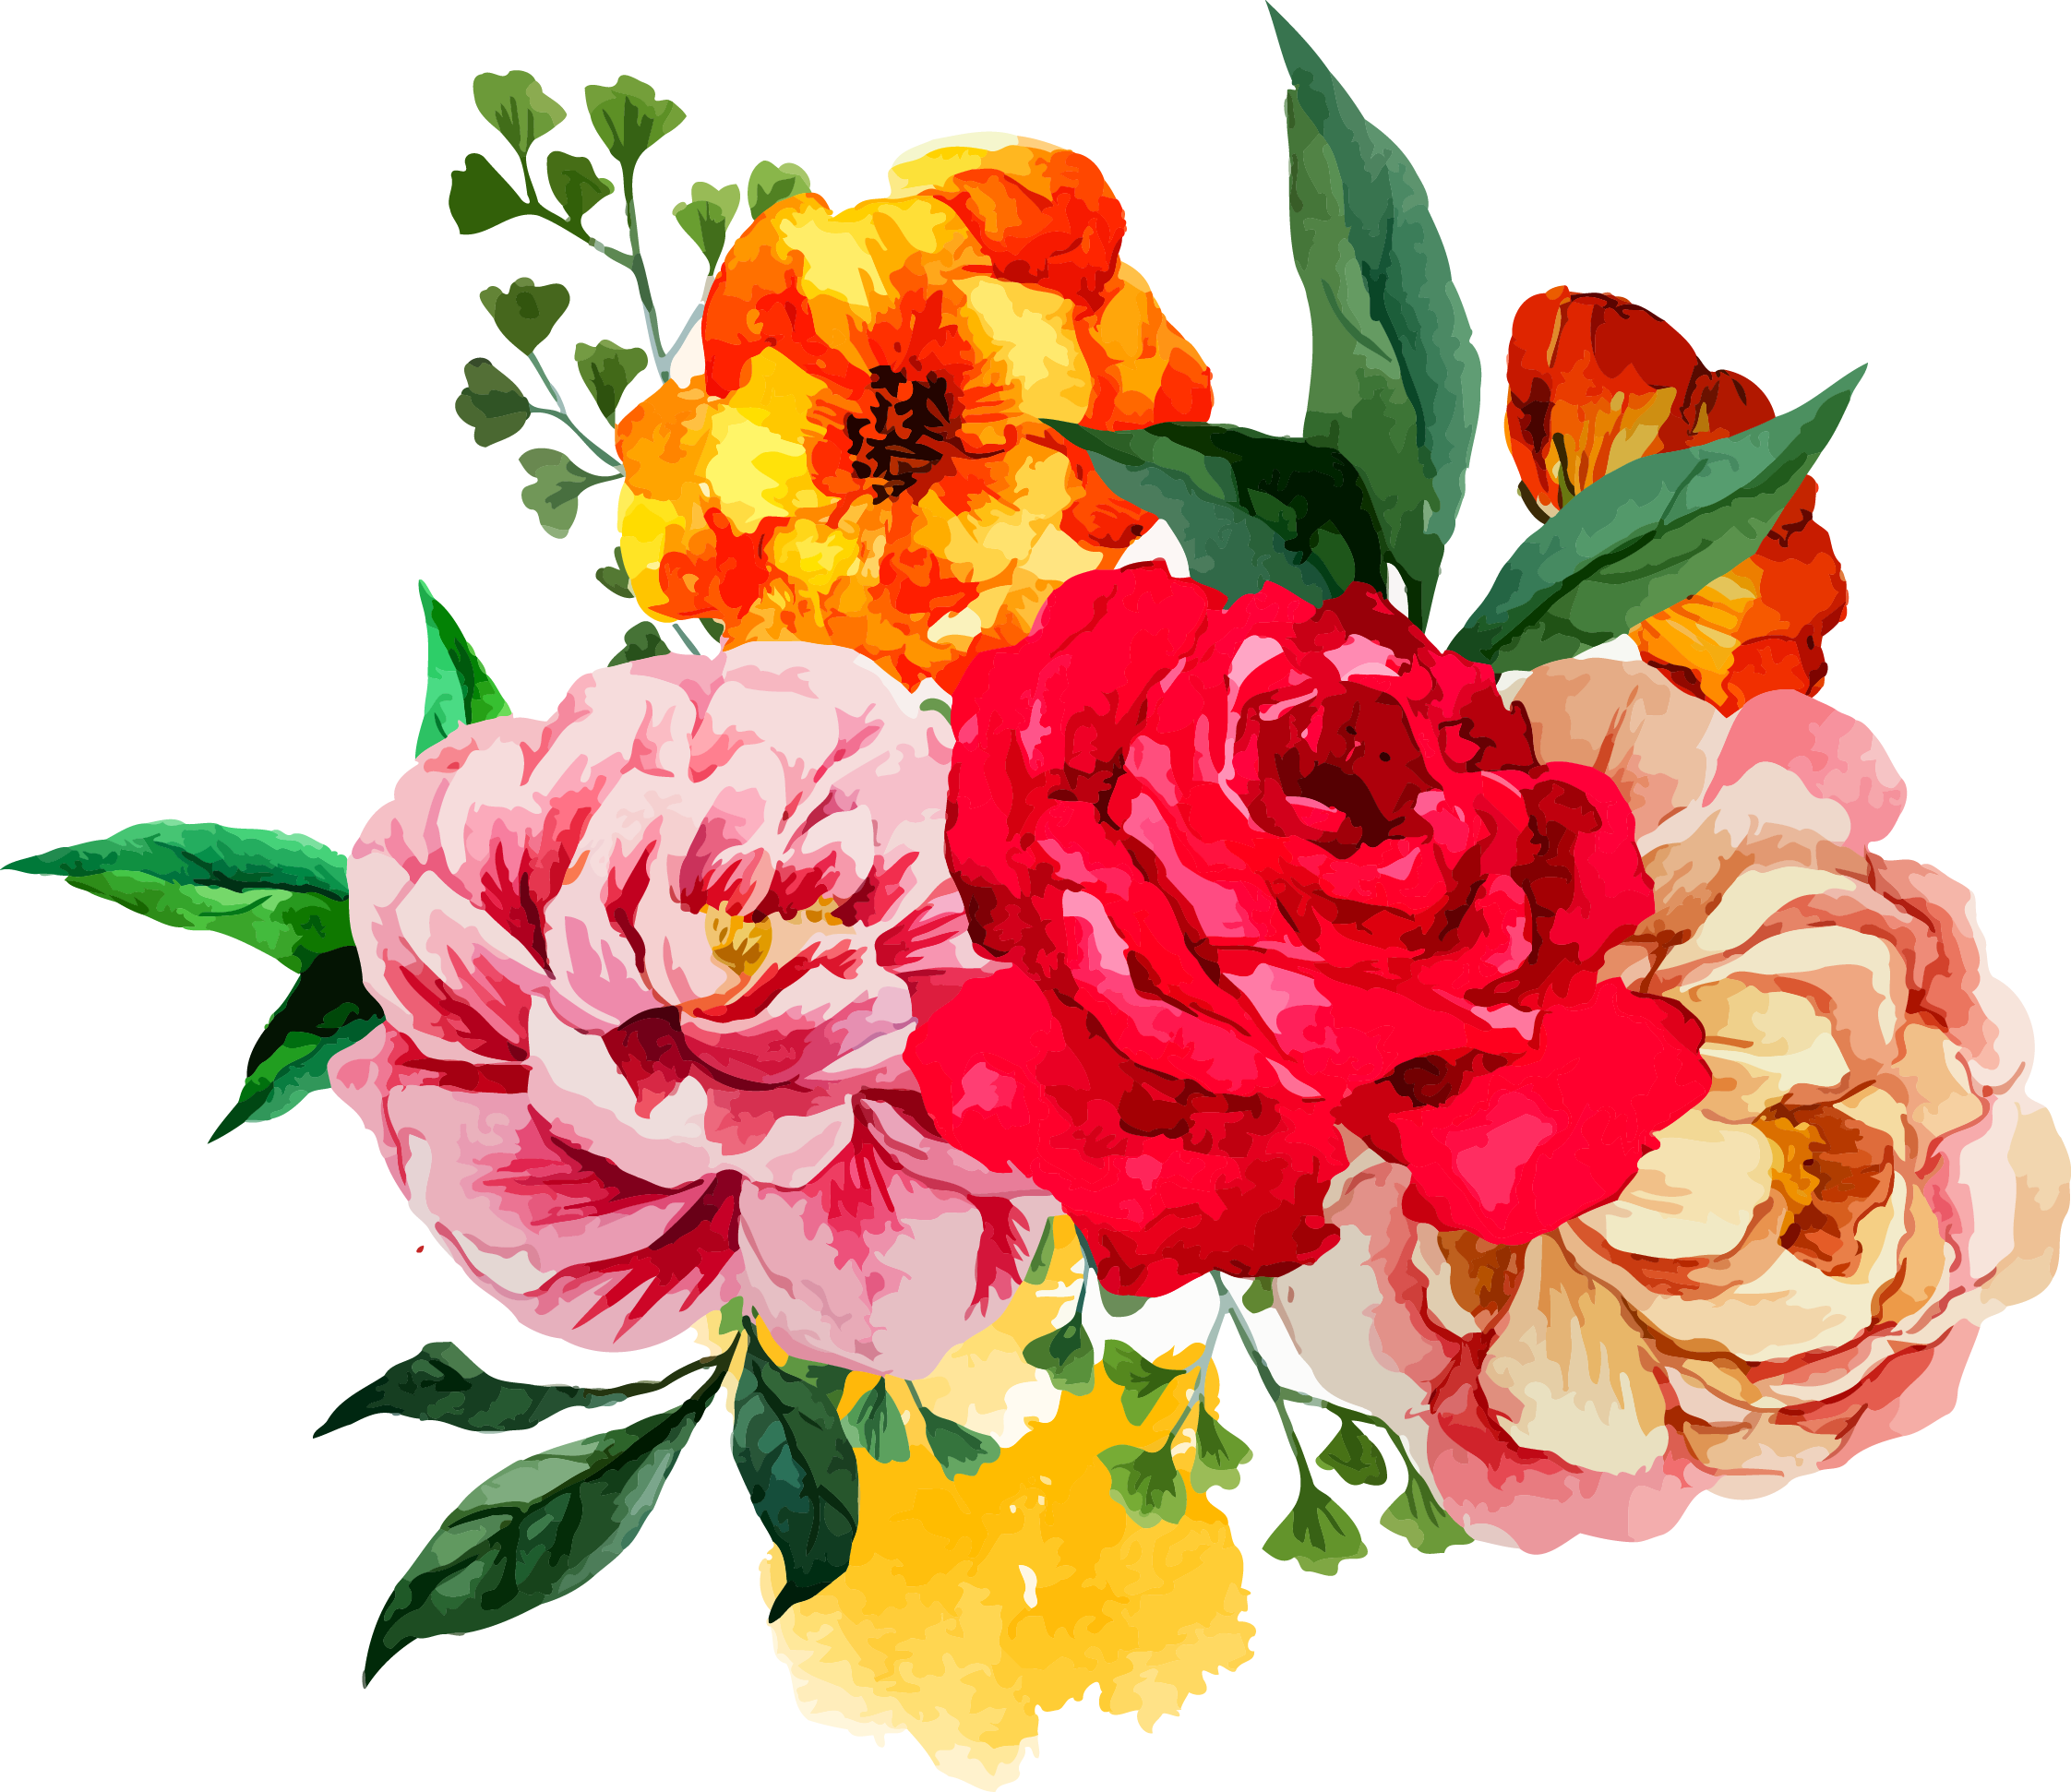 Watercolor flower bouquet png. Painting clip art peony